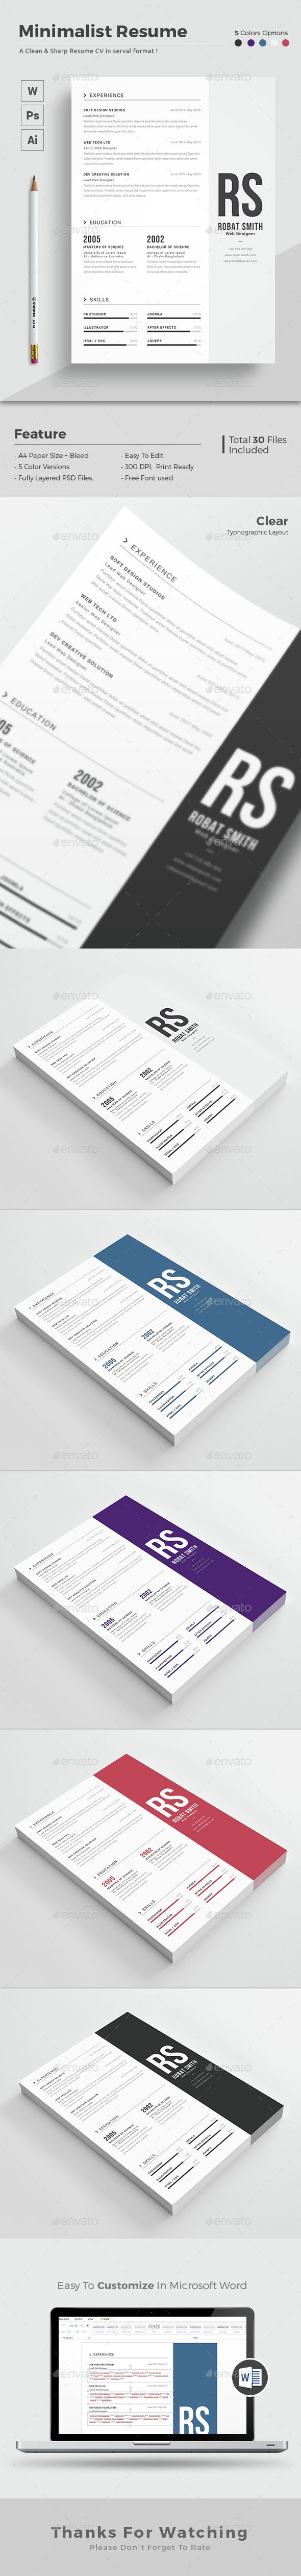 letter format for application%0A Minimalist Resume Template PSD  Vector EPS  AI  Download here  http